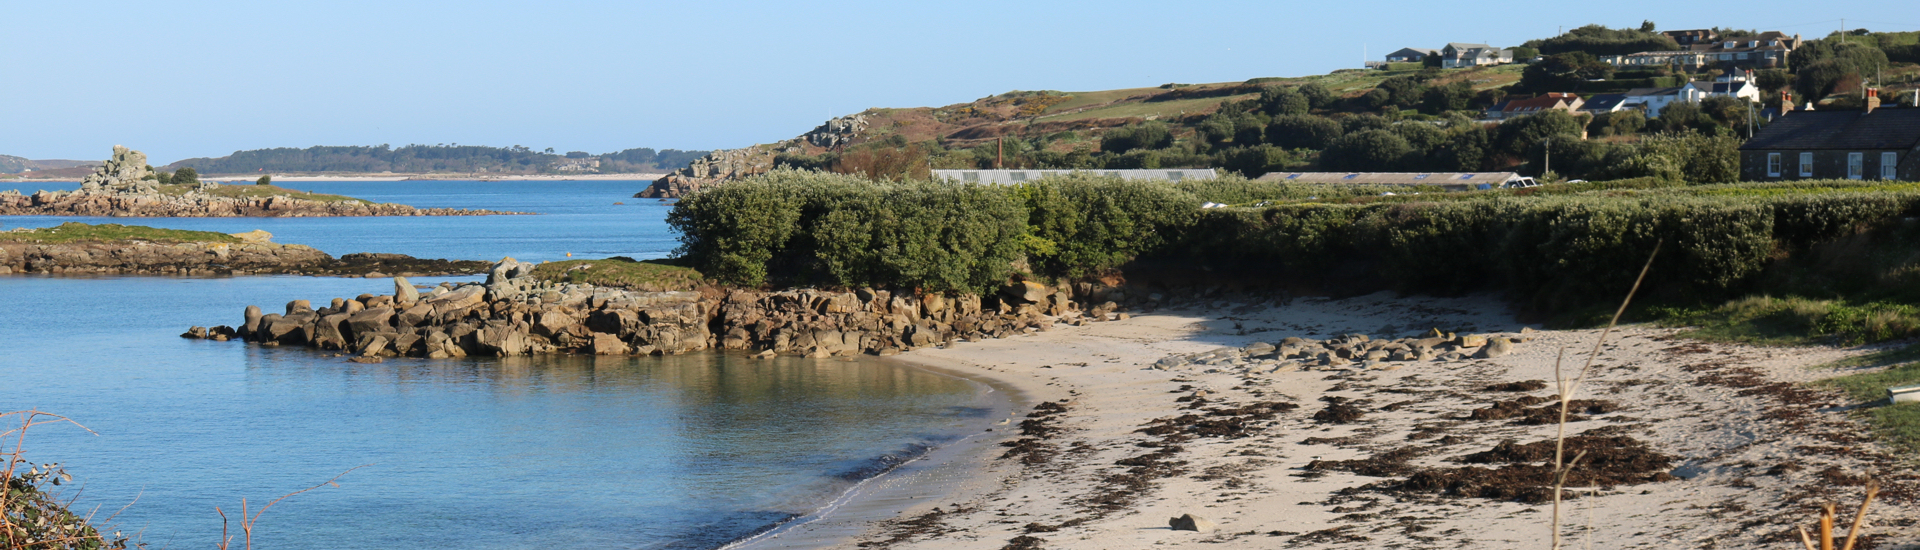 View of the beach near our self-catering holiday apartment on the Isles of Scilly